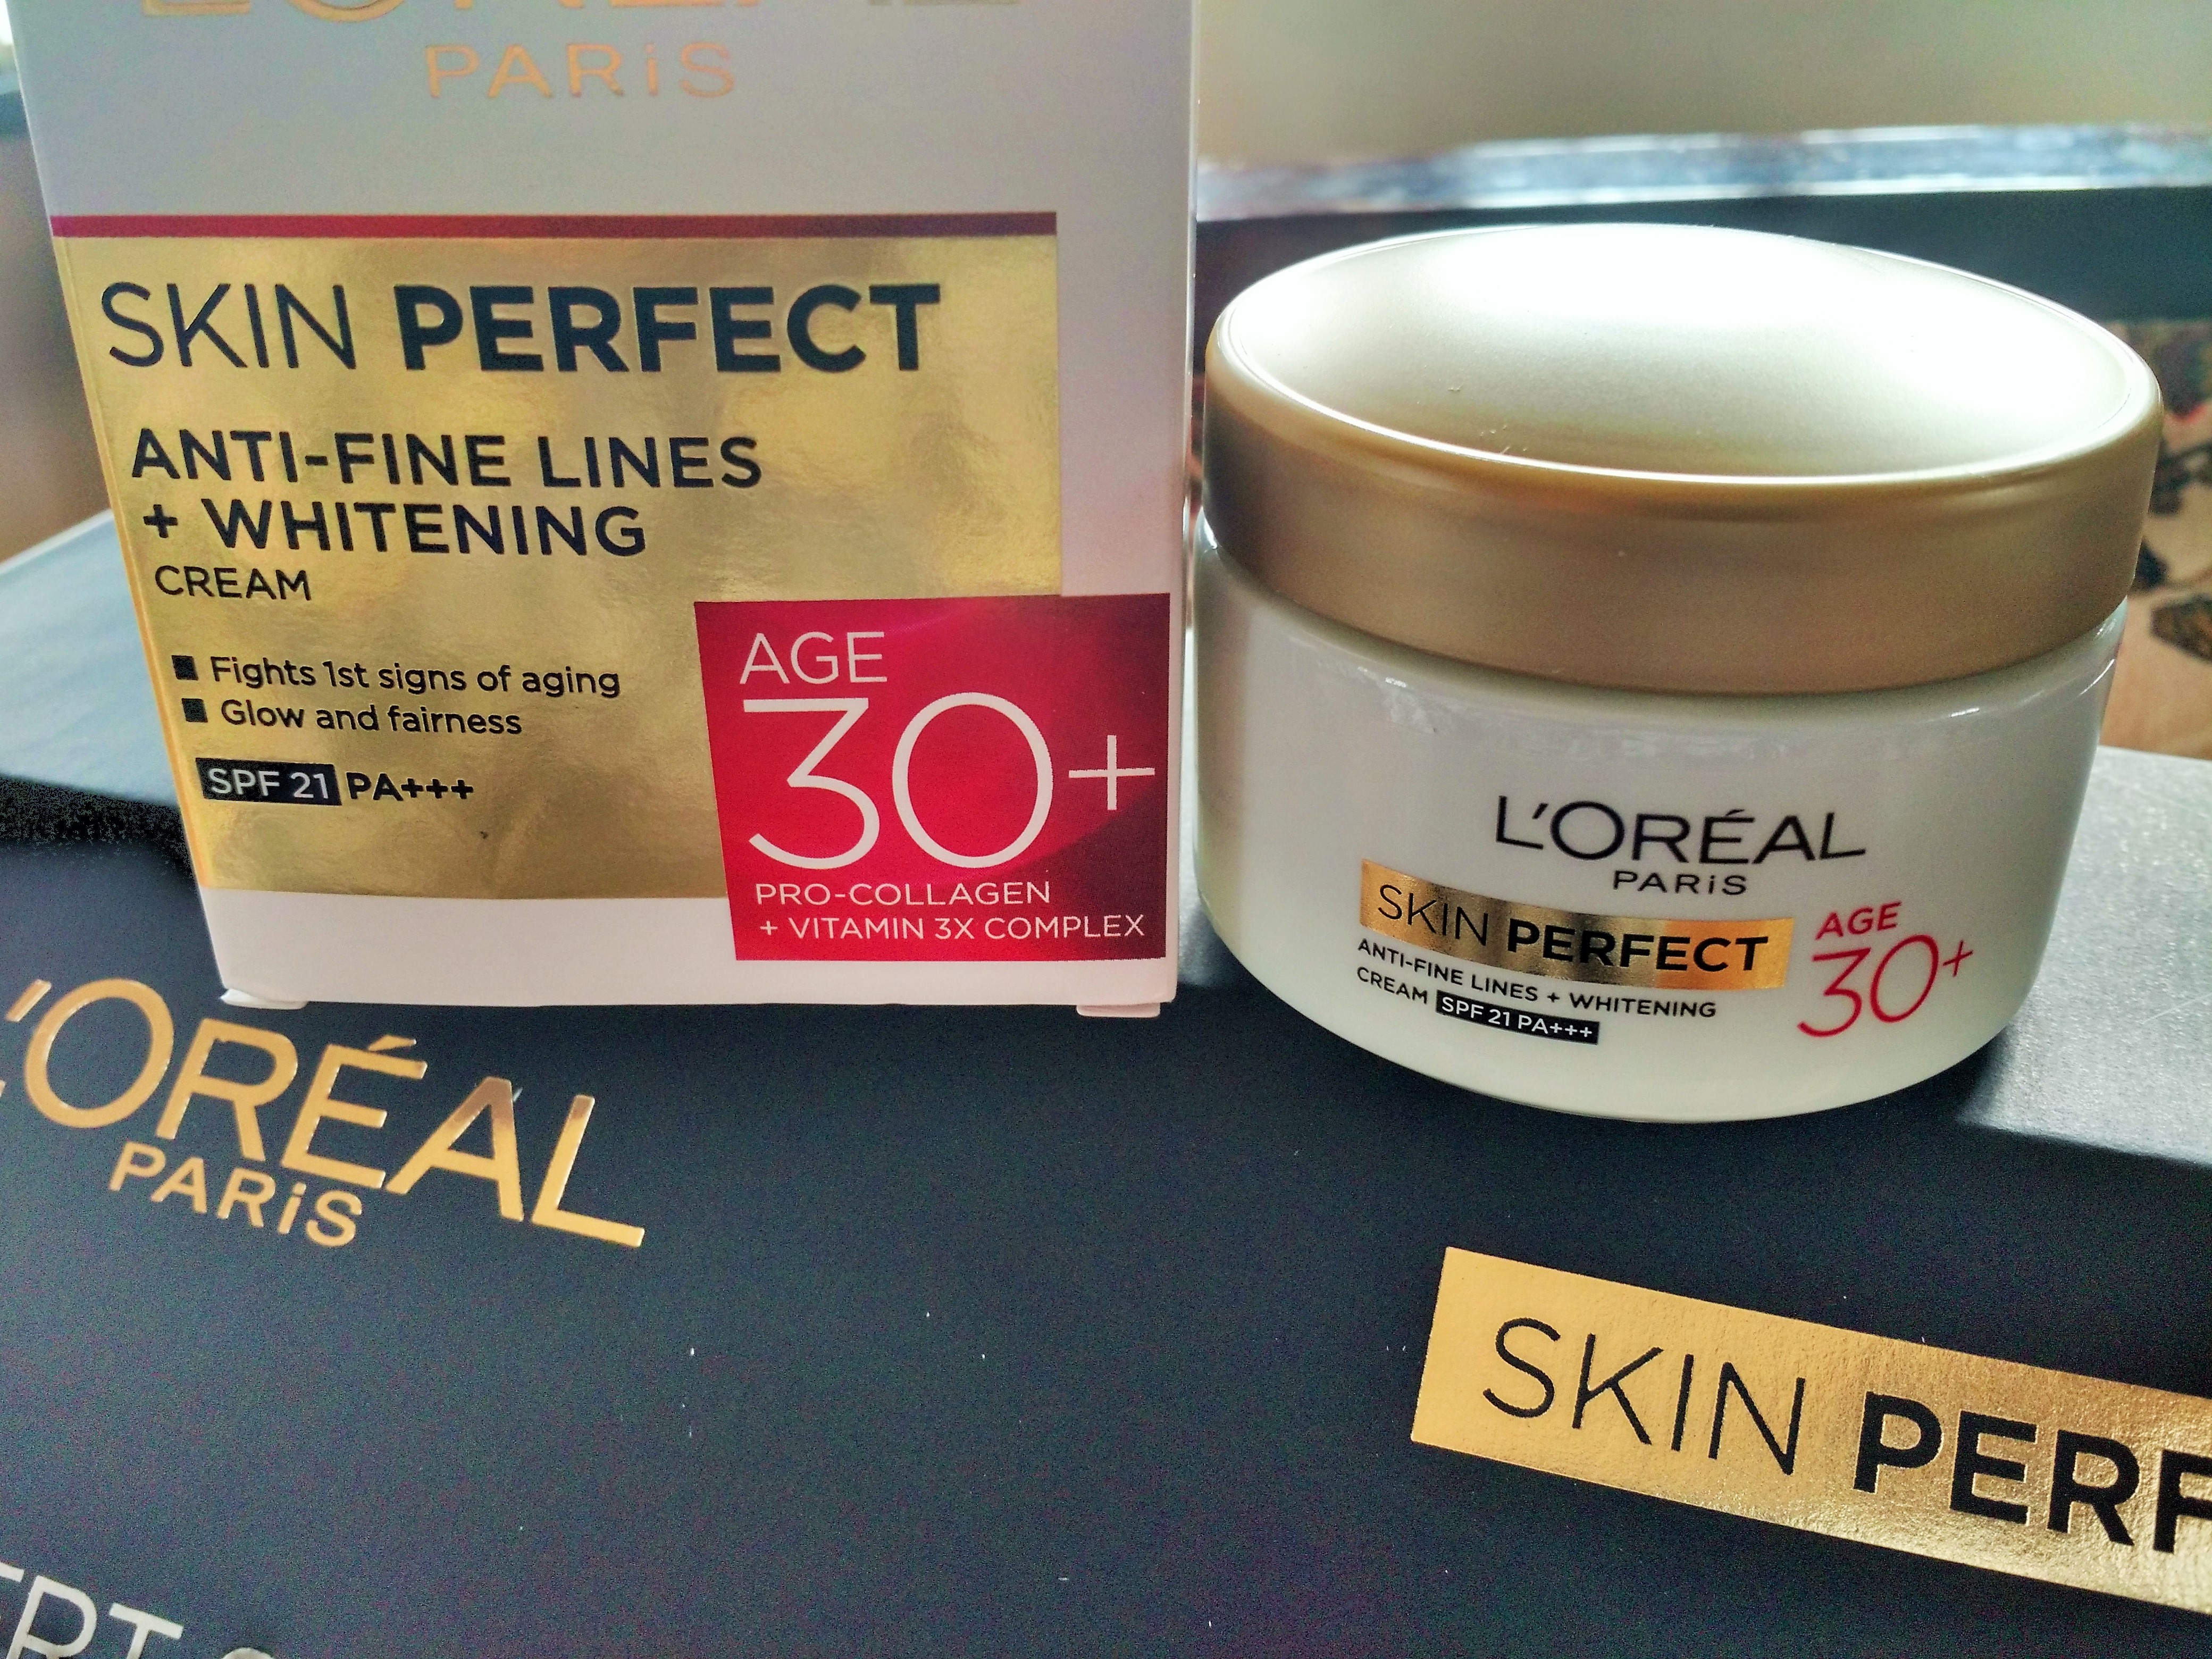 L'Oreal Paris Anti Fine Lines + Whitening Cream